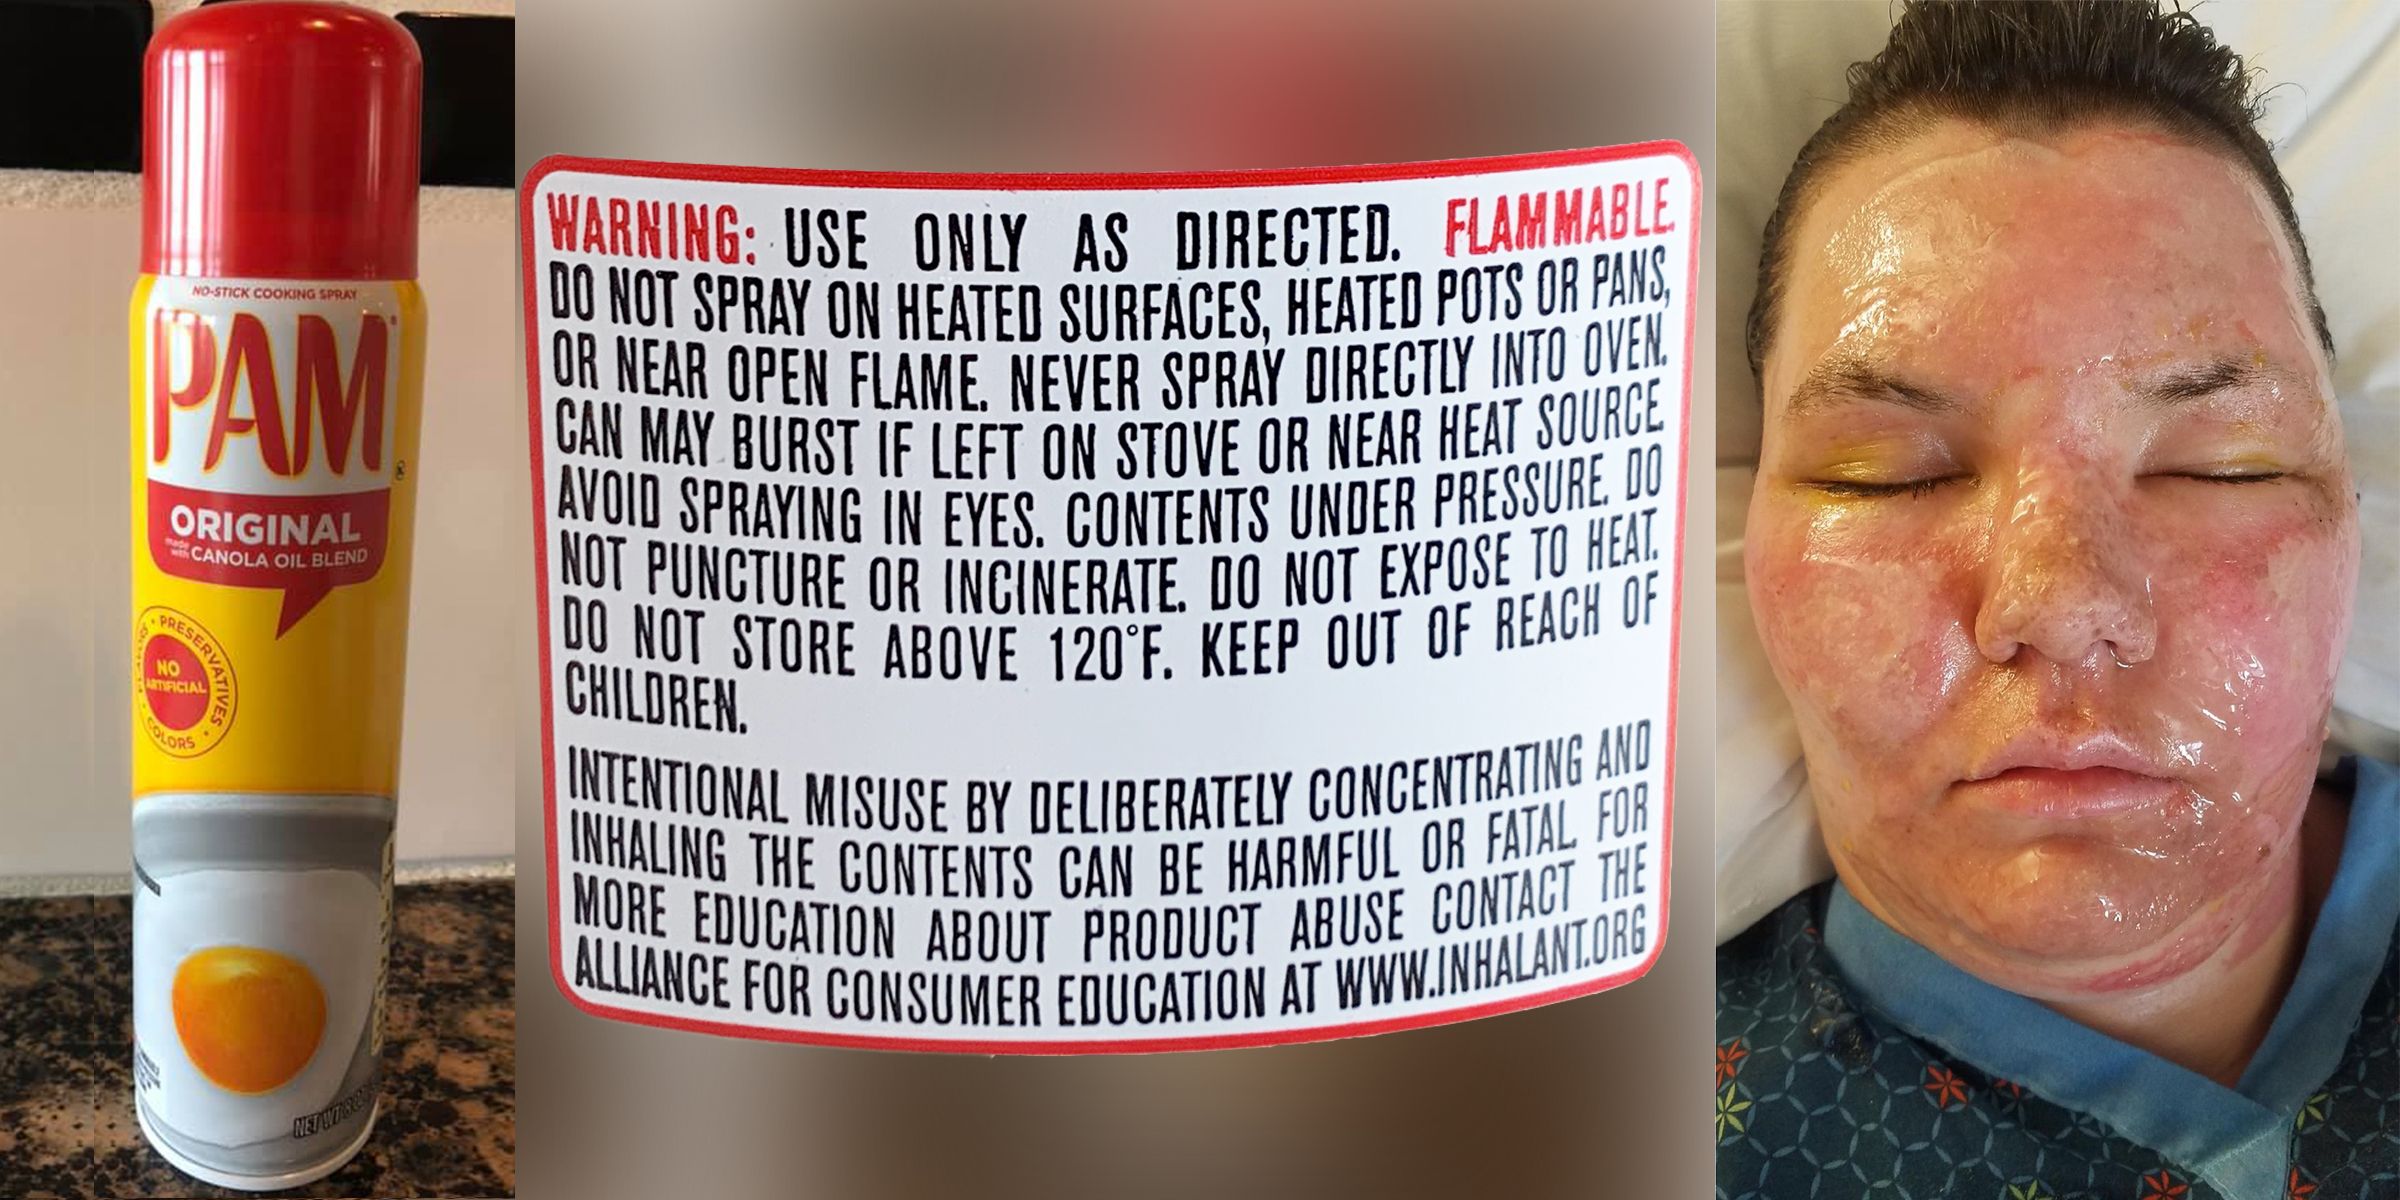 Lawsuits claim cans of Pam cooking spray are exploding: Here's what consumers need to know